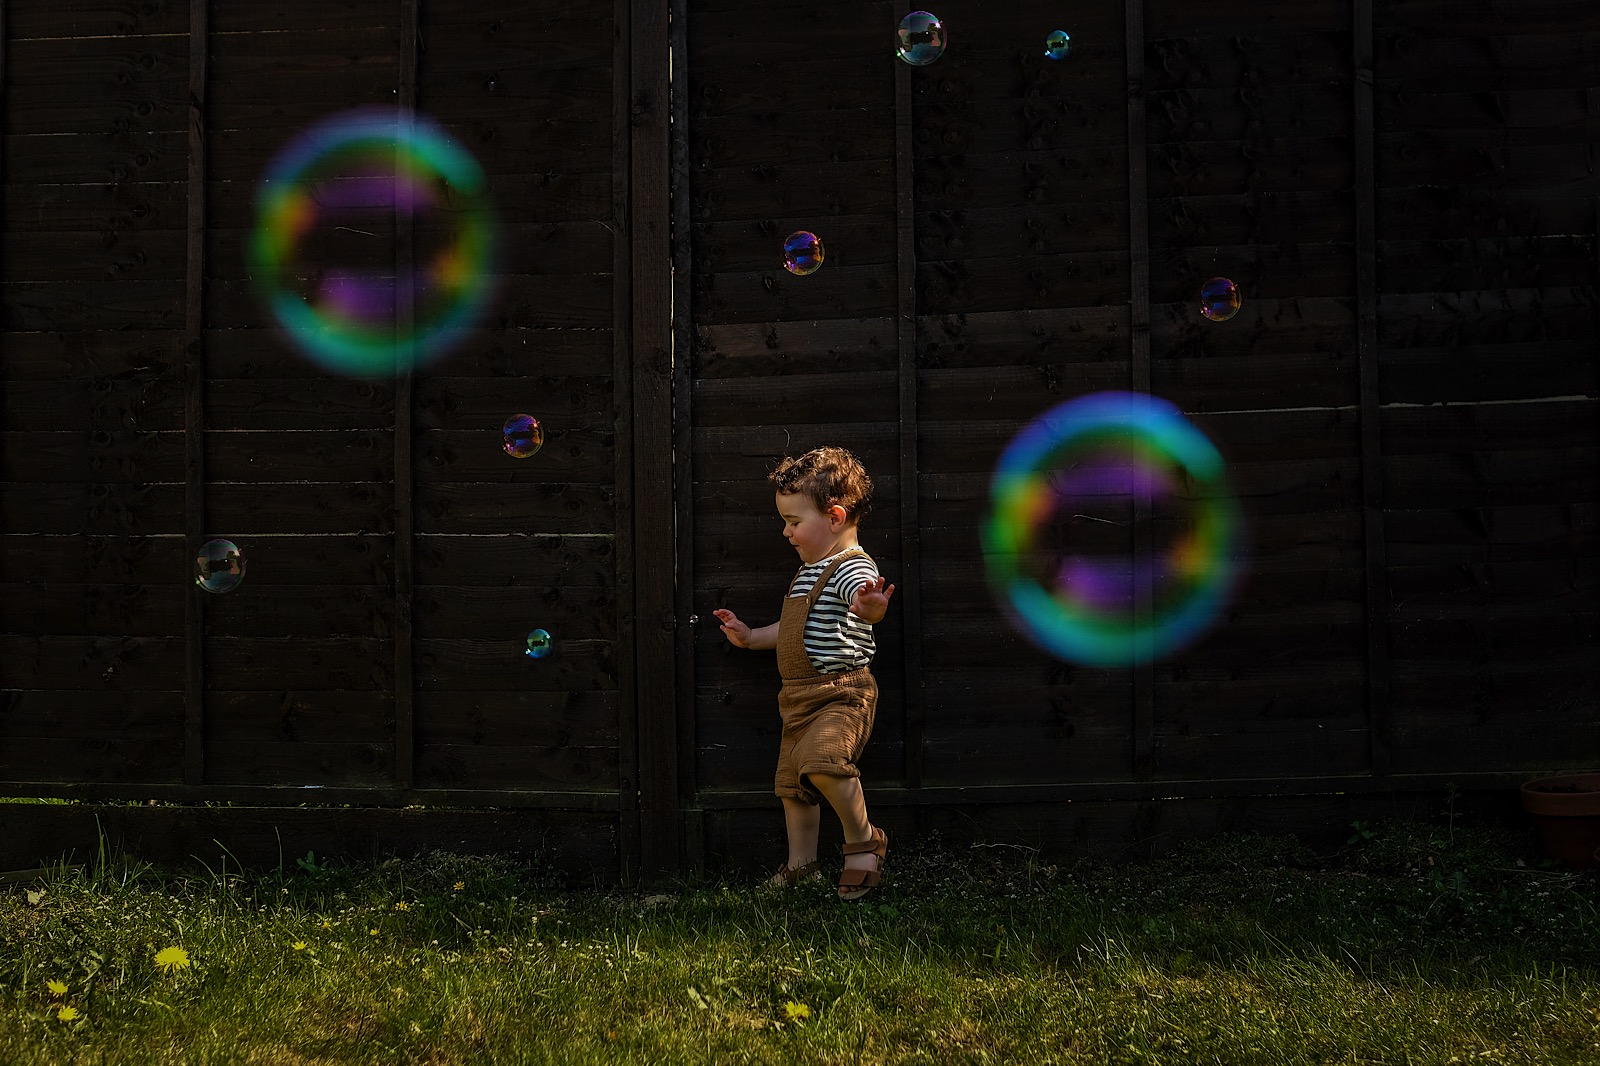 young child chasing bubbles in garden